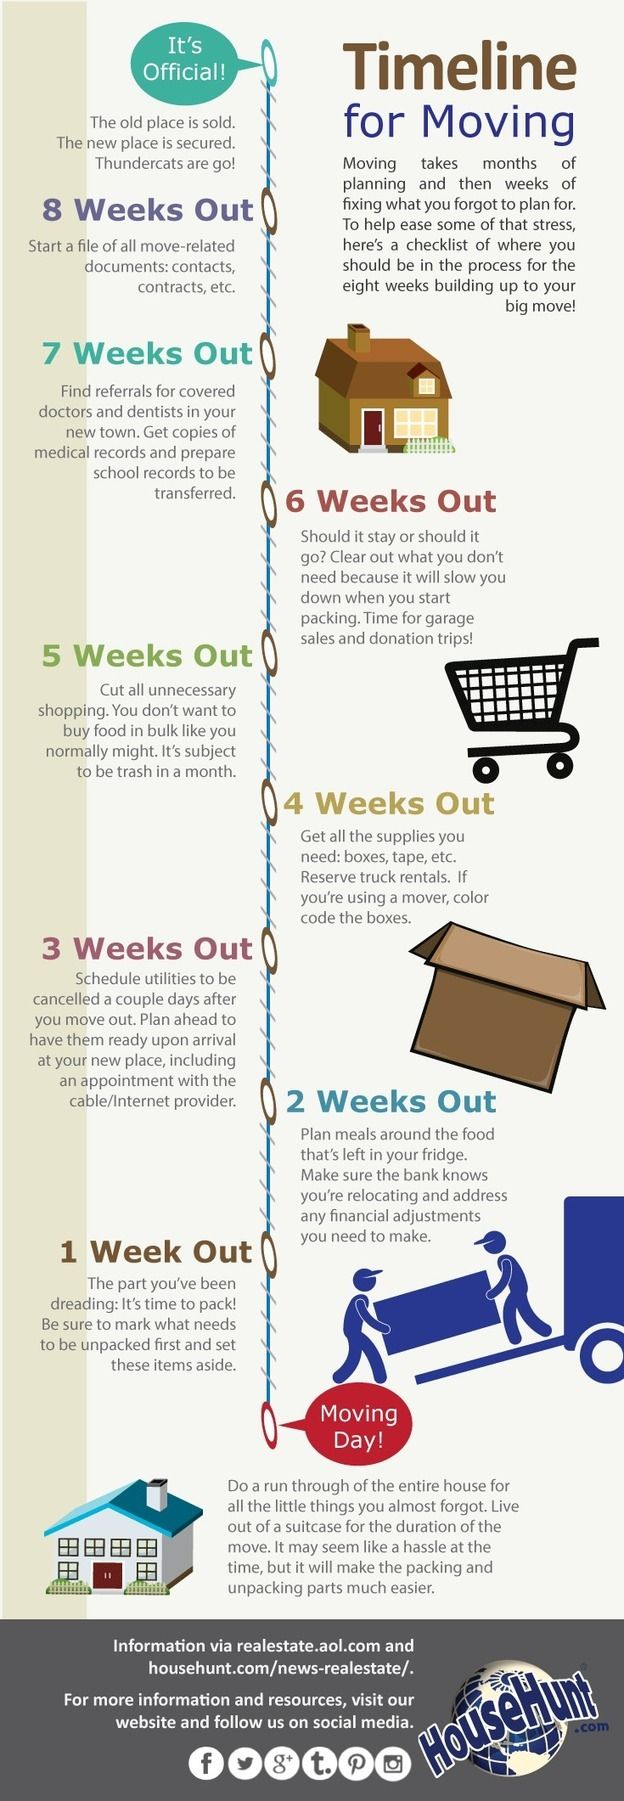 Summer is always a popular time to move.  If you're one of those people, we found a perfect infographic for you: Timeline for Moving {infographic} - Dennis Lambert, DDS | #Mason # Cincinnati | #OH | www.cincykidsteeth.com